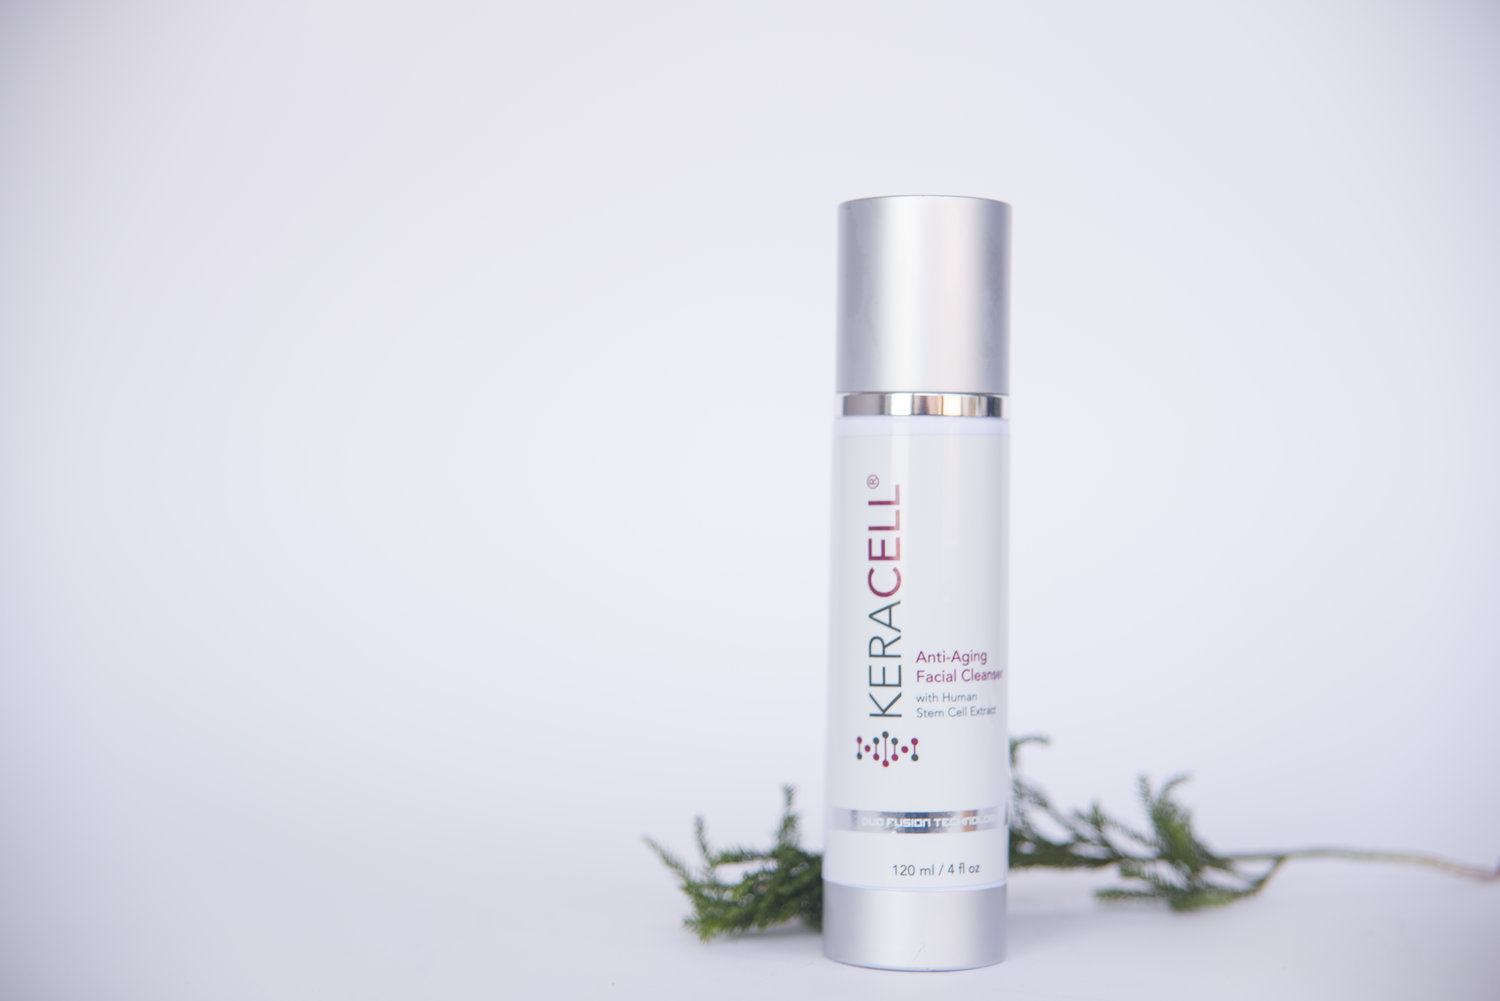 Keracell Antiaging Cleanser